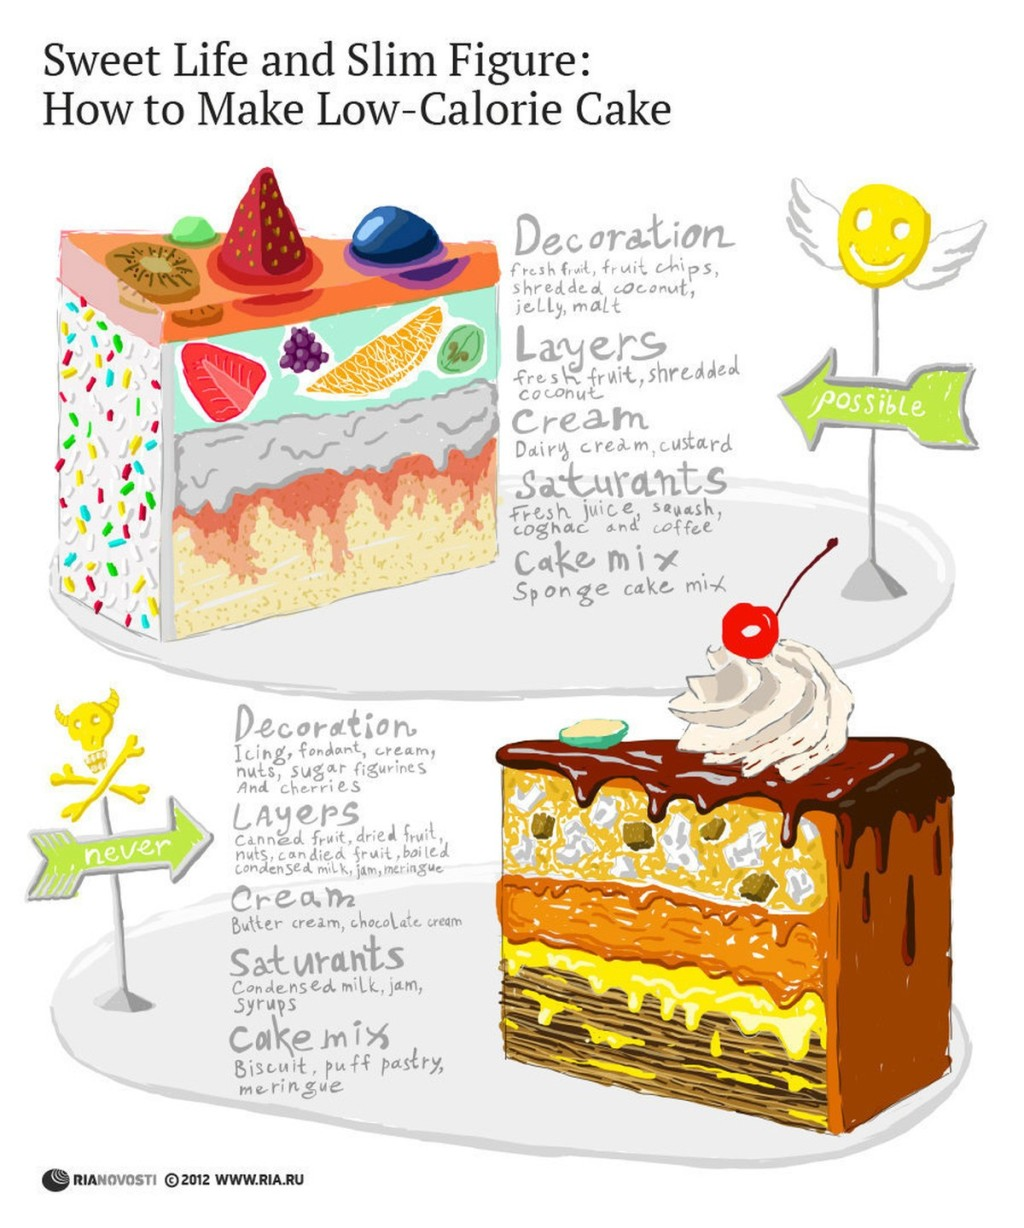 00 RIA-Novosti Infographics. How to Make Low-Calorie Cake. 2012